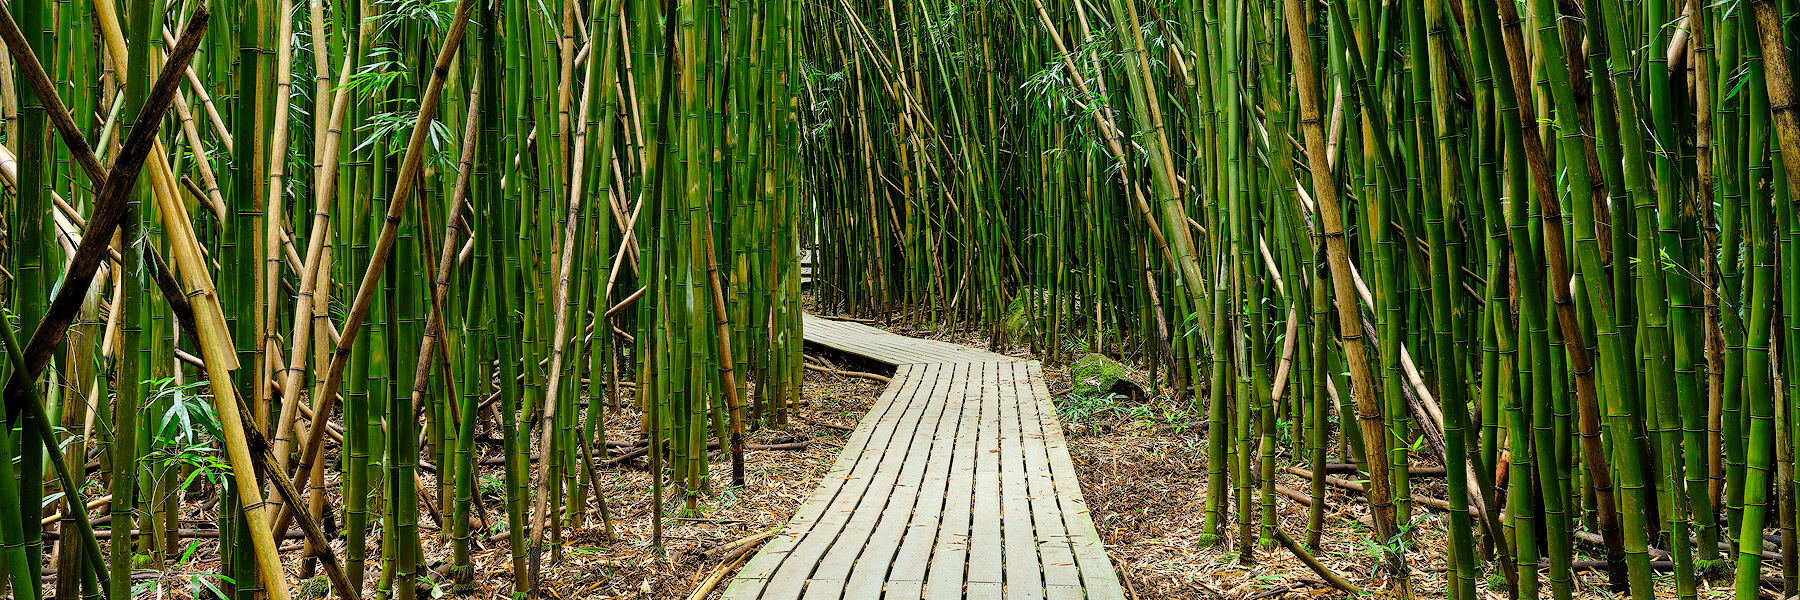 bamboo, bamboo forest, pipiwai trail, pipiwai, haleakala national park, hana, green, photo